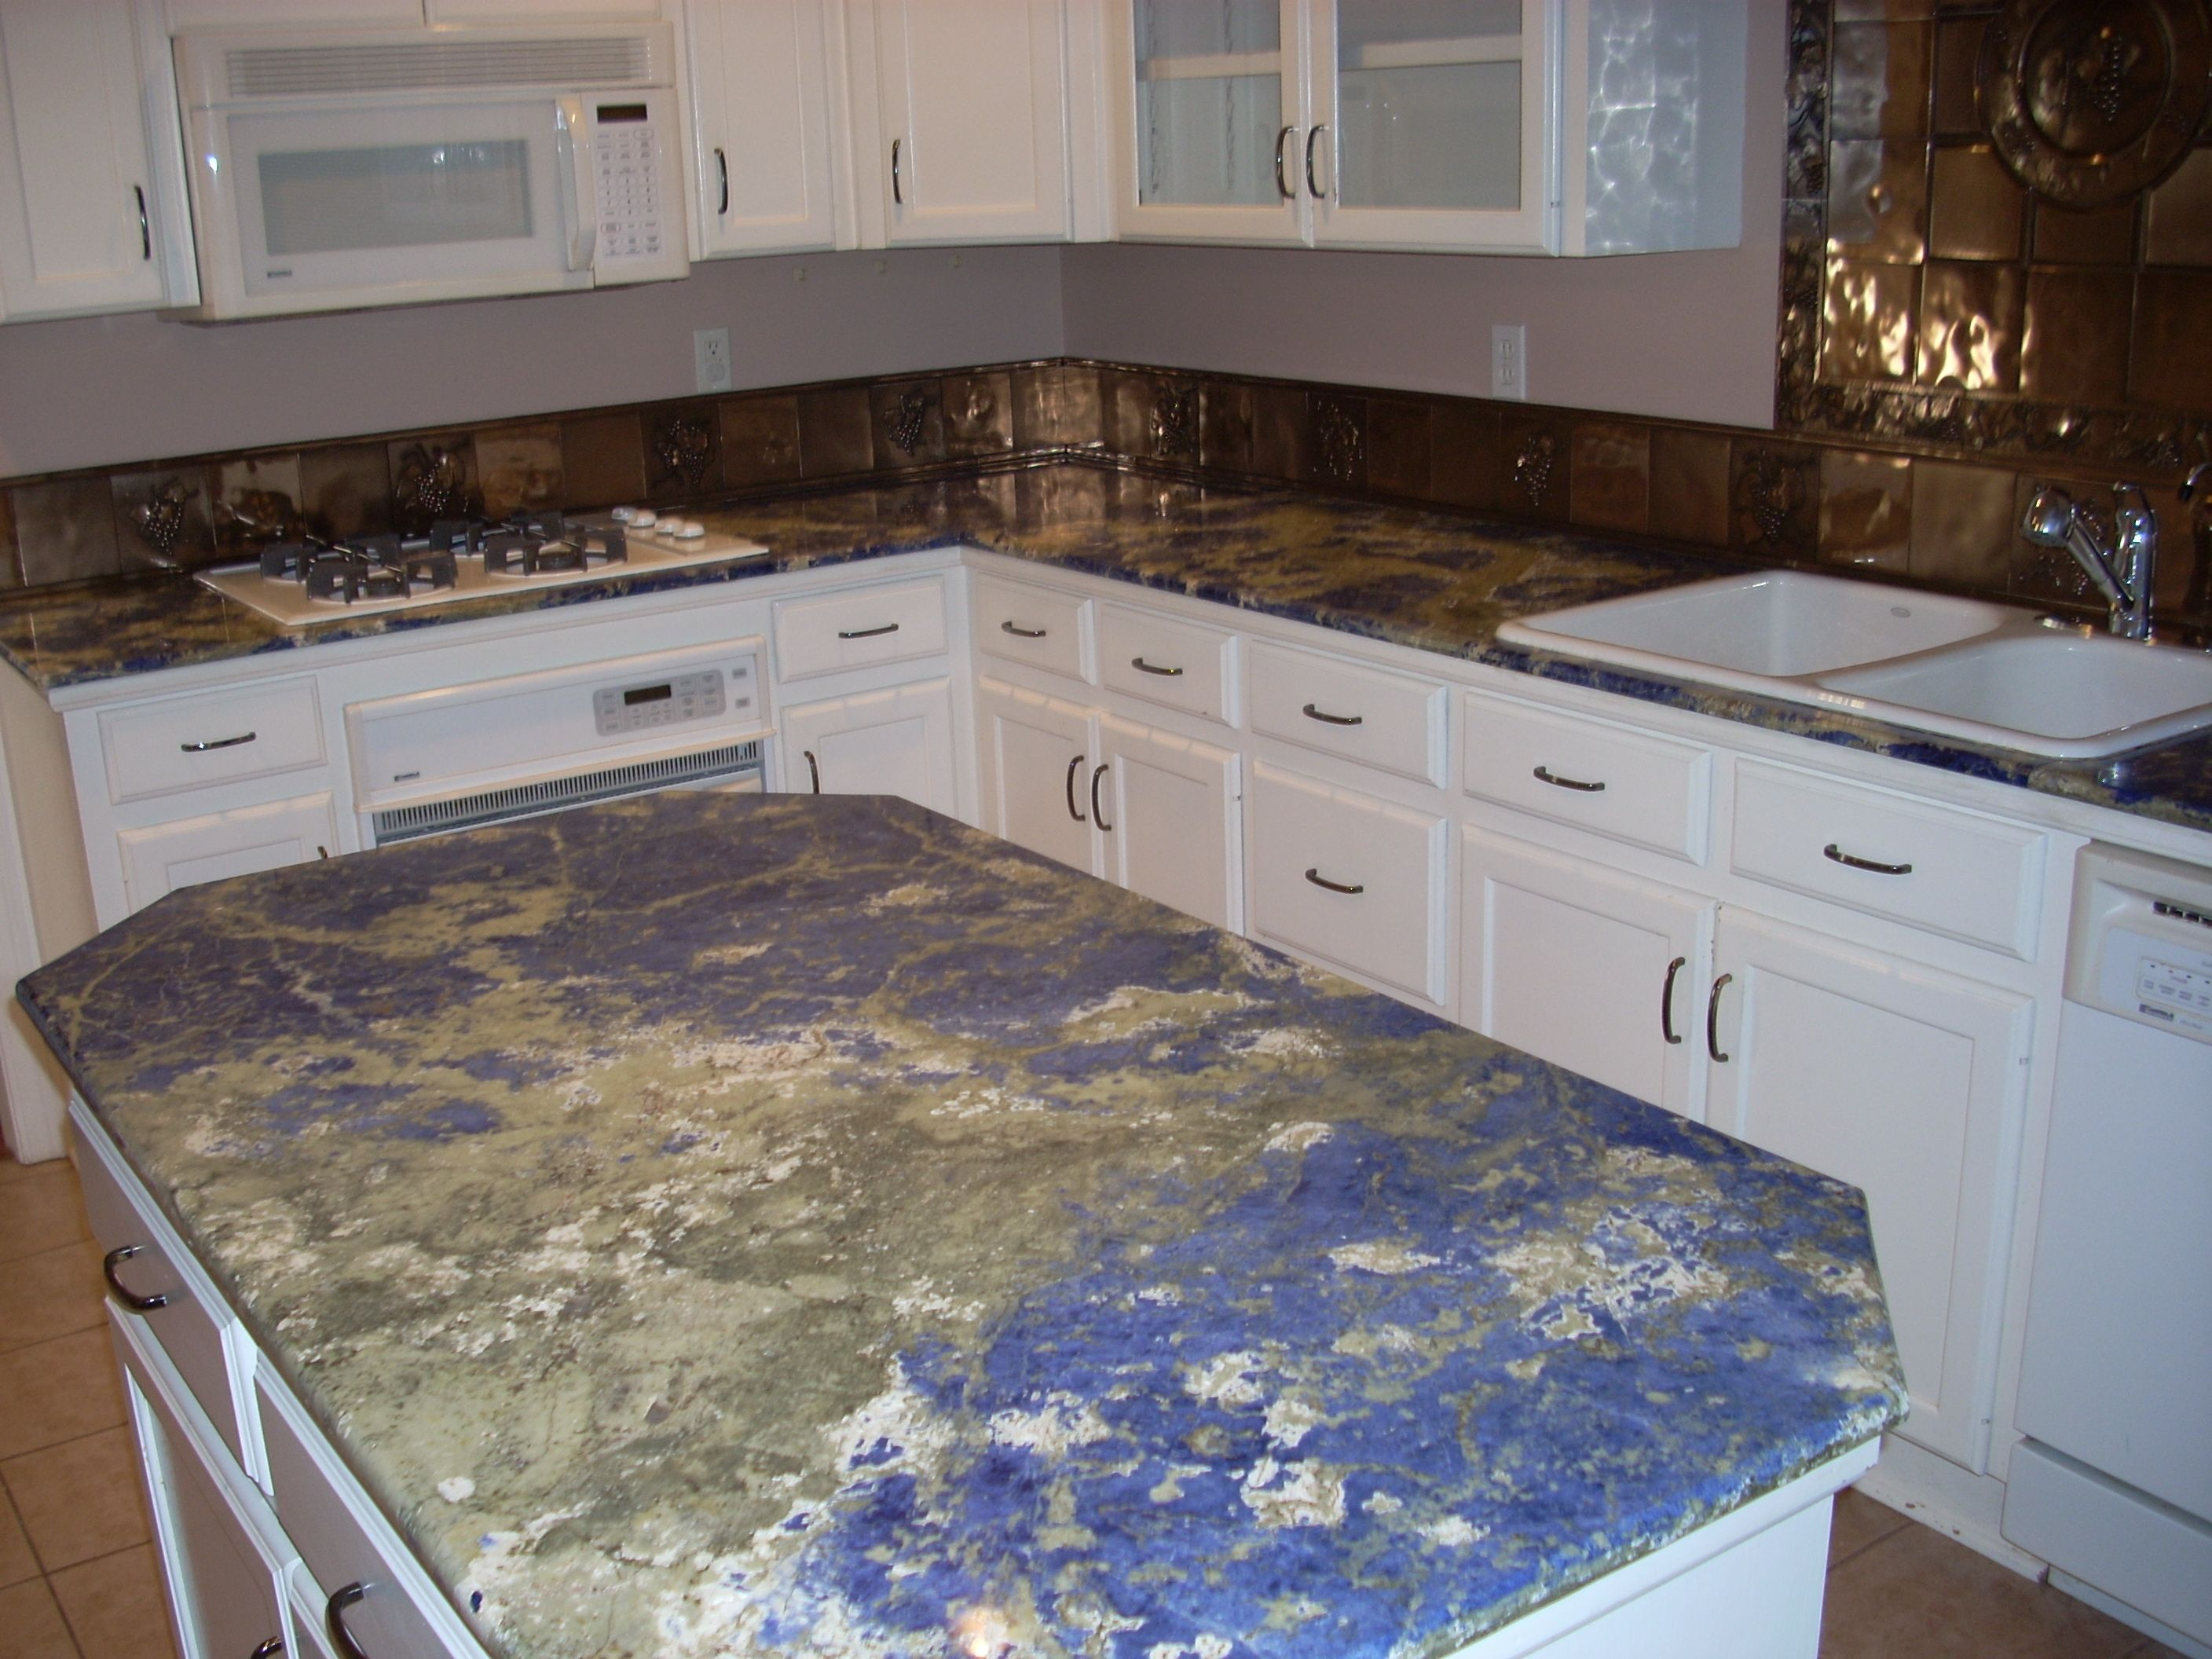 Sodalite Blue Granite Countertops Amazing Texture Variation Looks Vivid Blue Granite